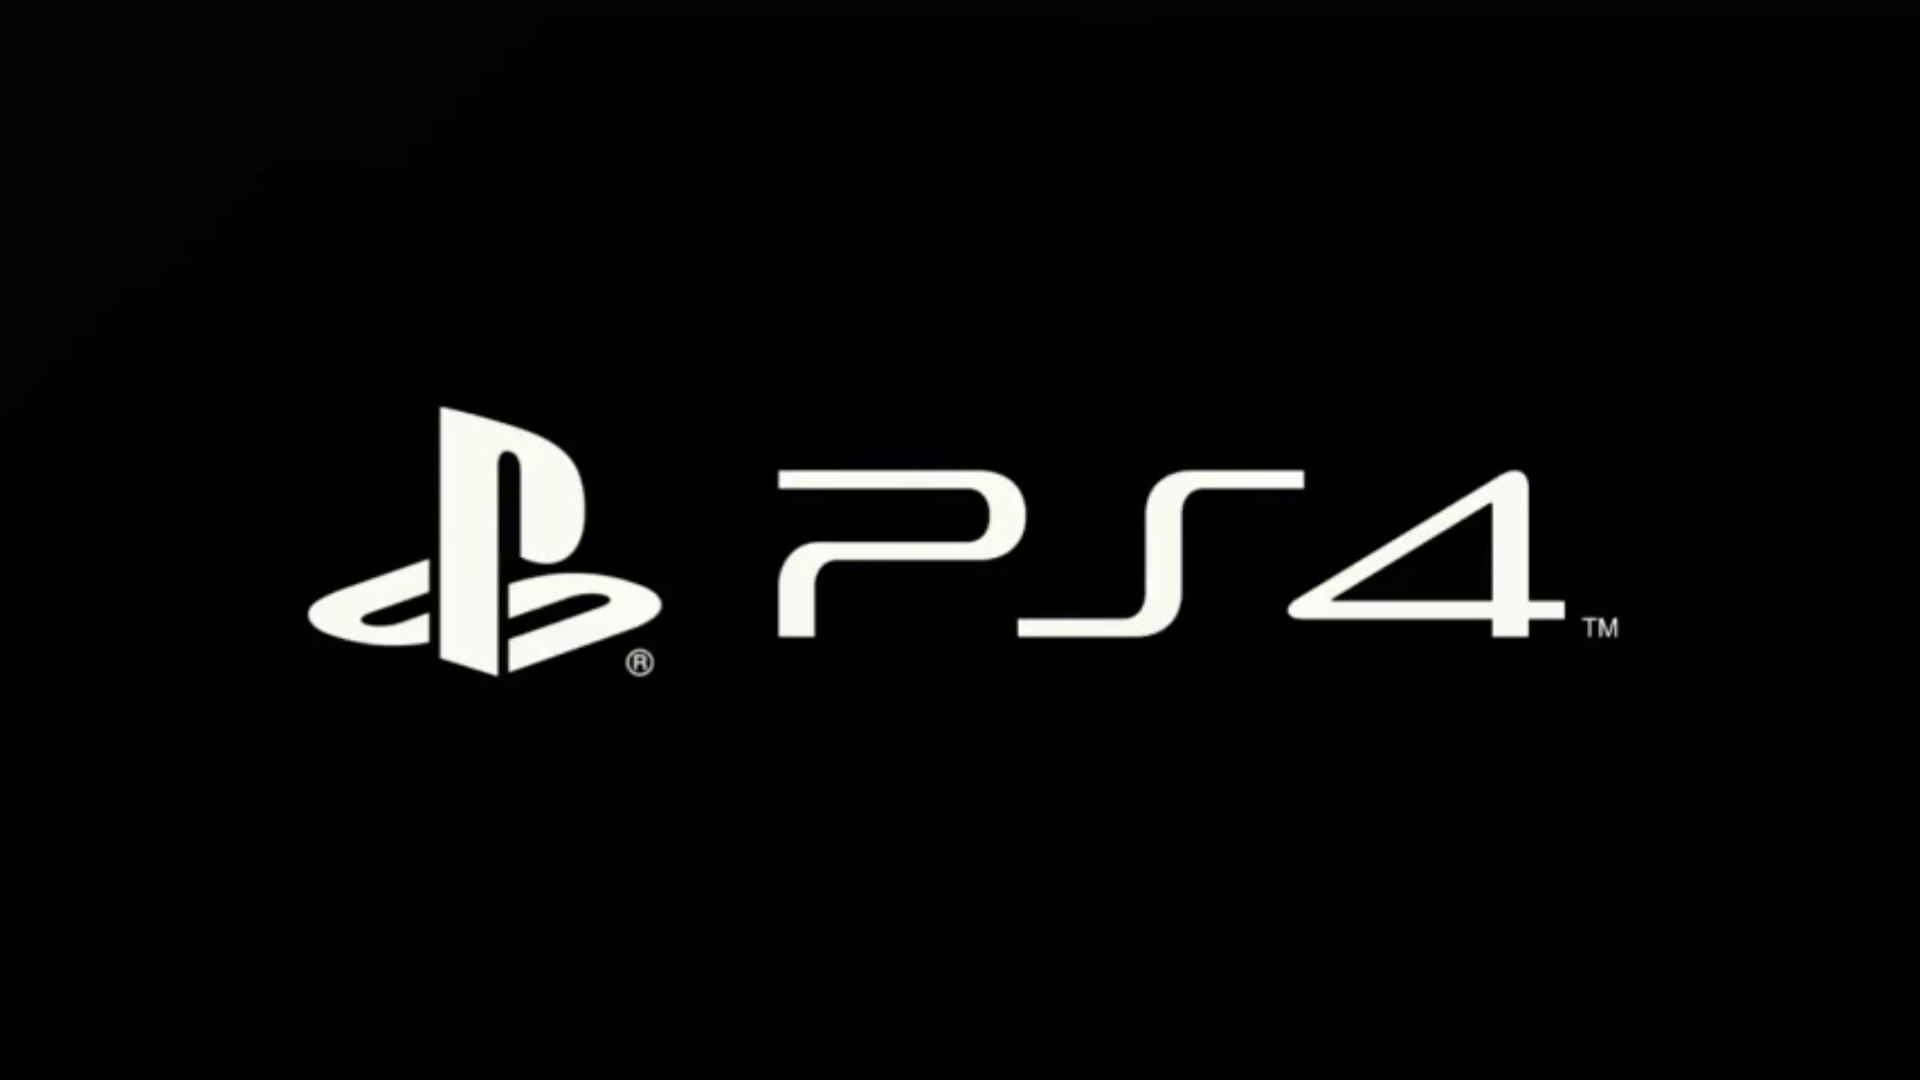 PlayStation 4 PS4 Logo